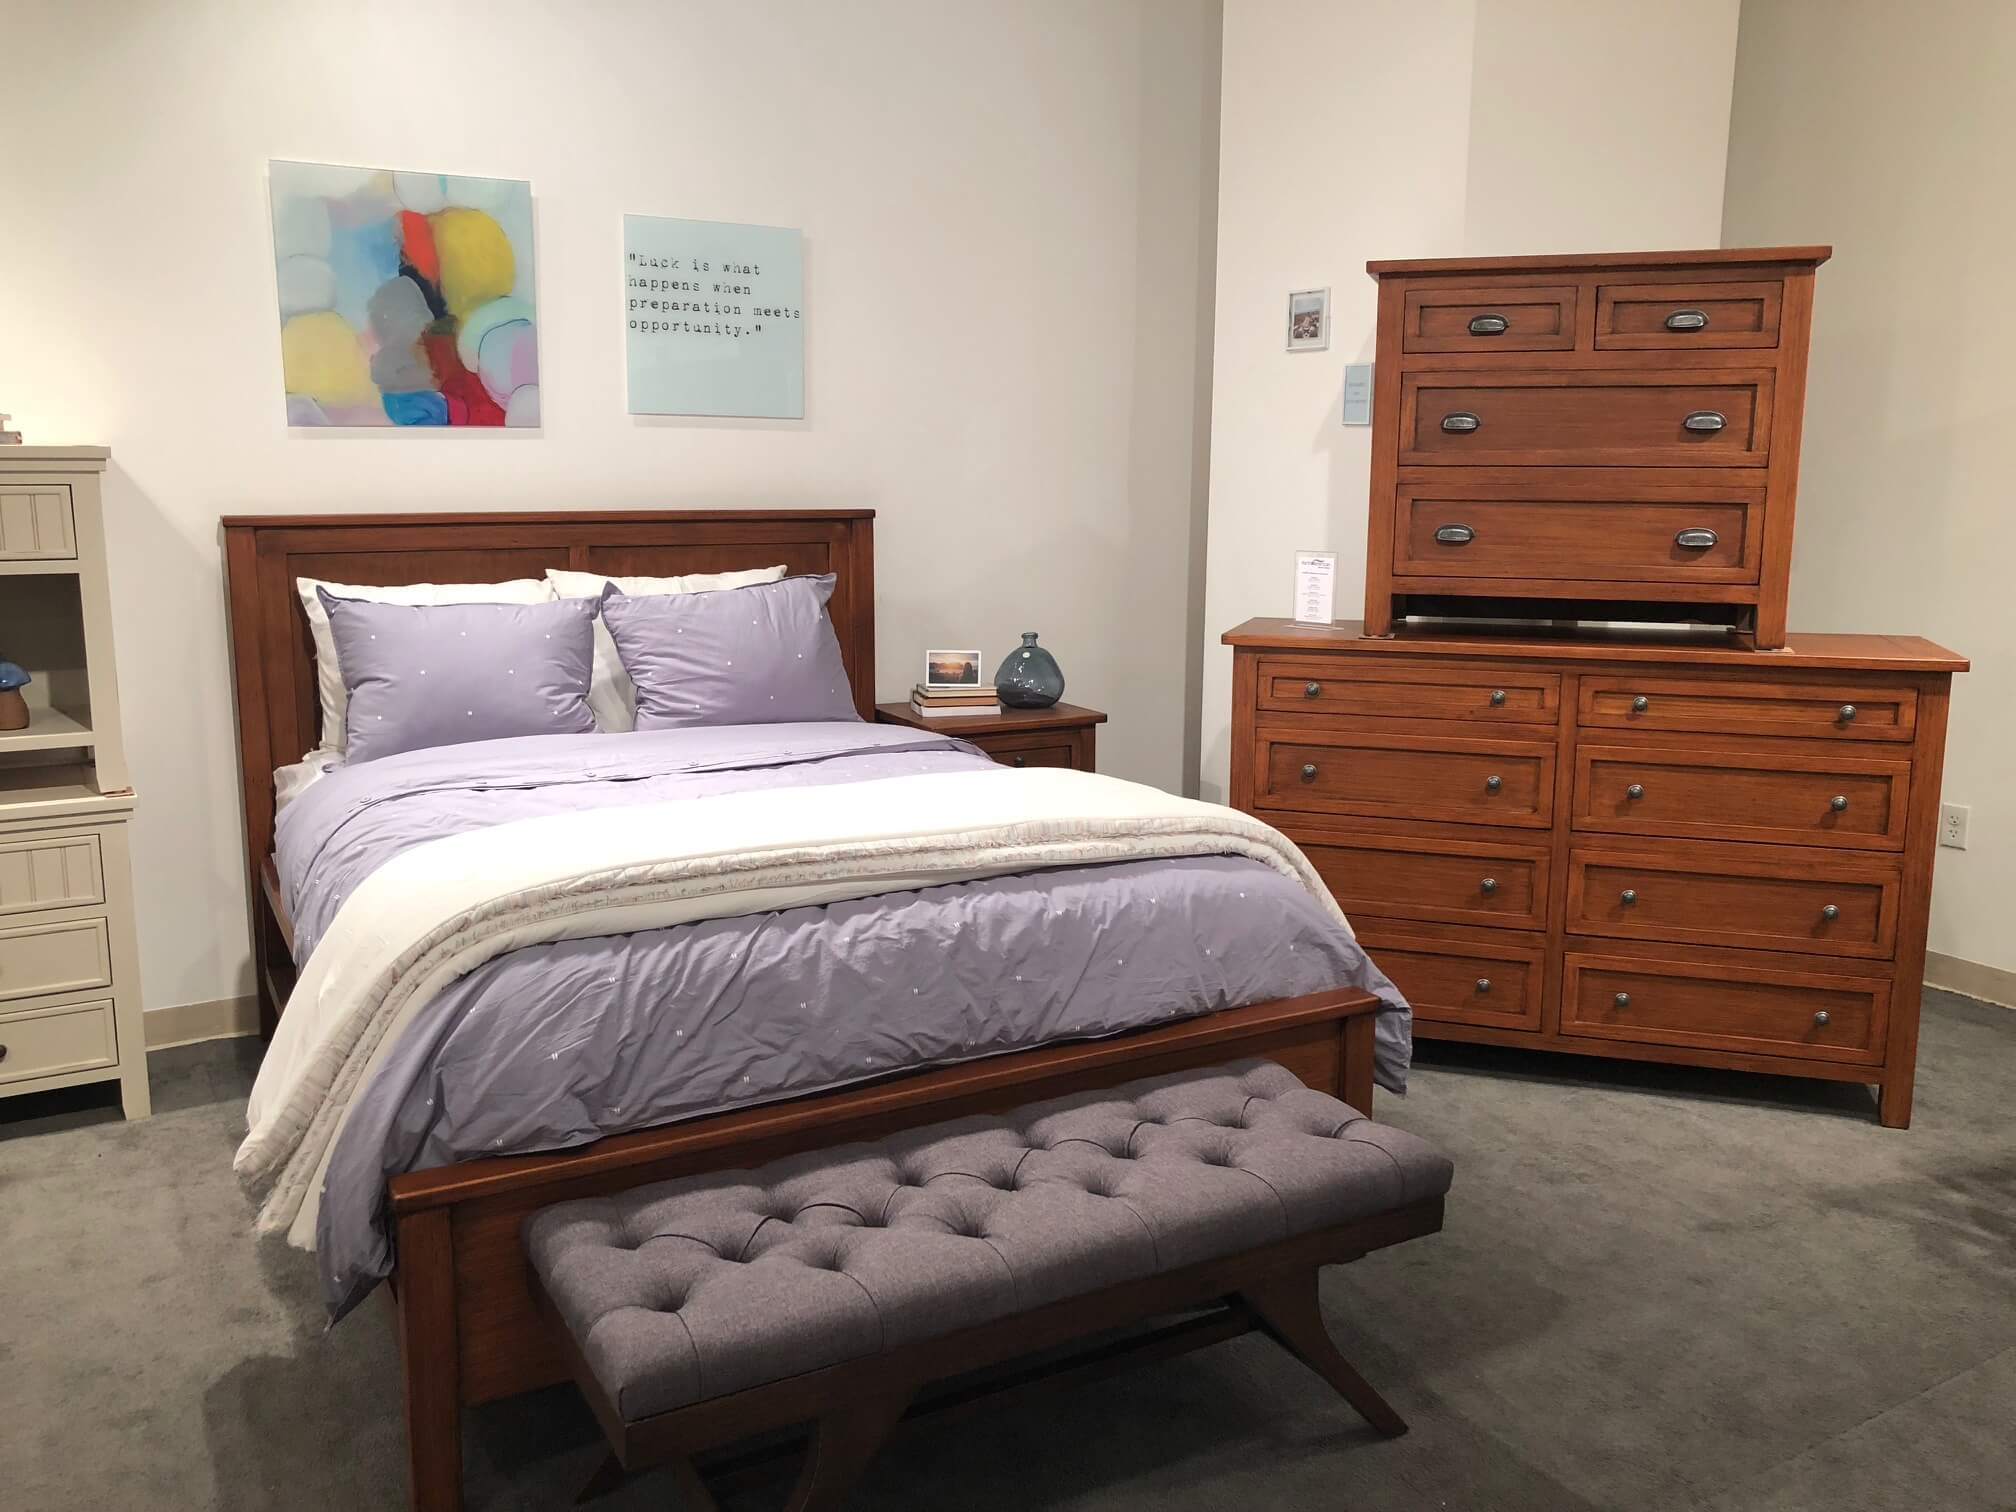 Winfrey 6002 Bed North American Bedrooms Amp More Seattle